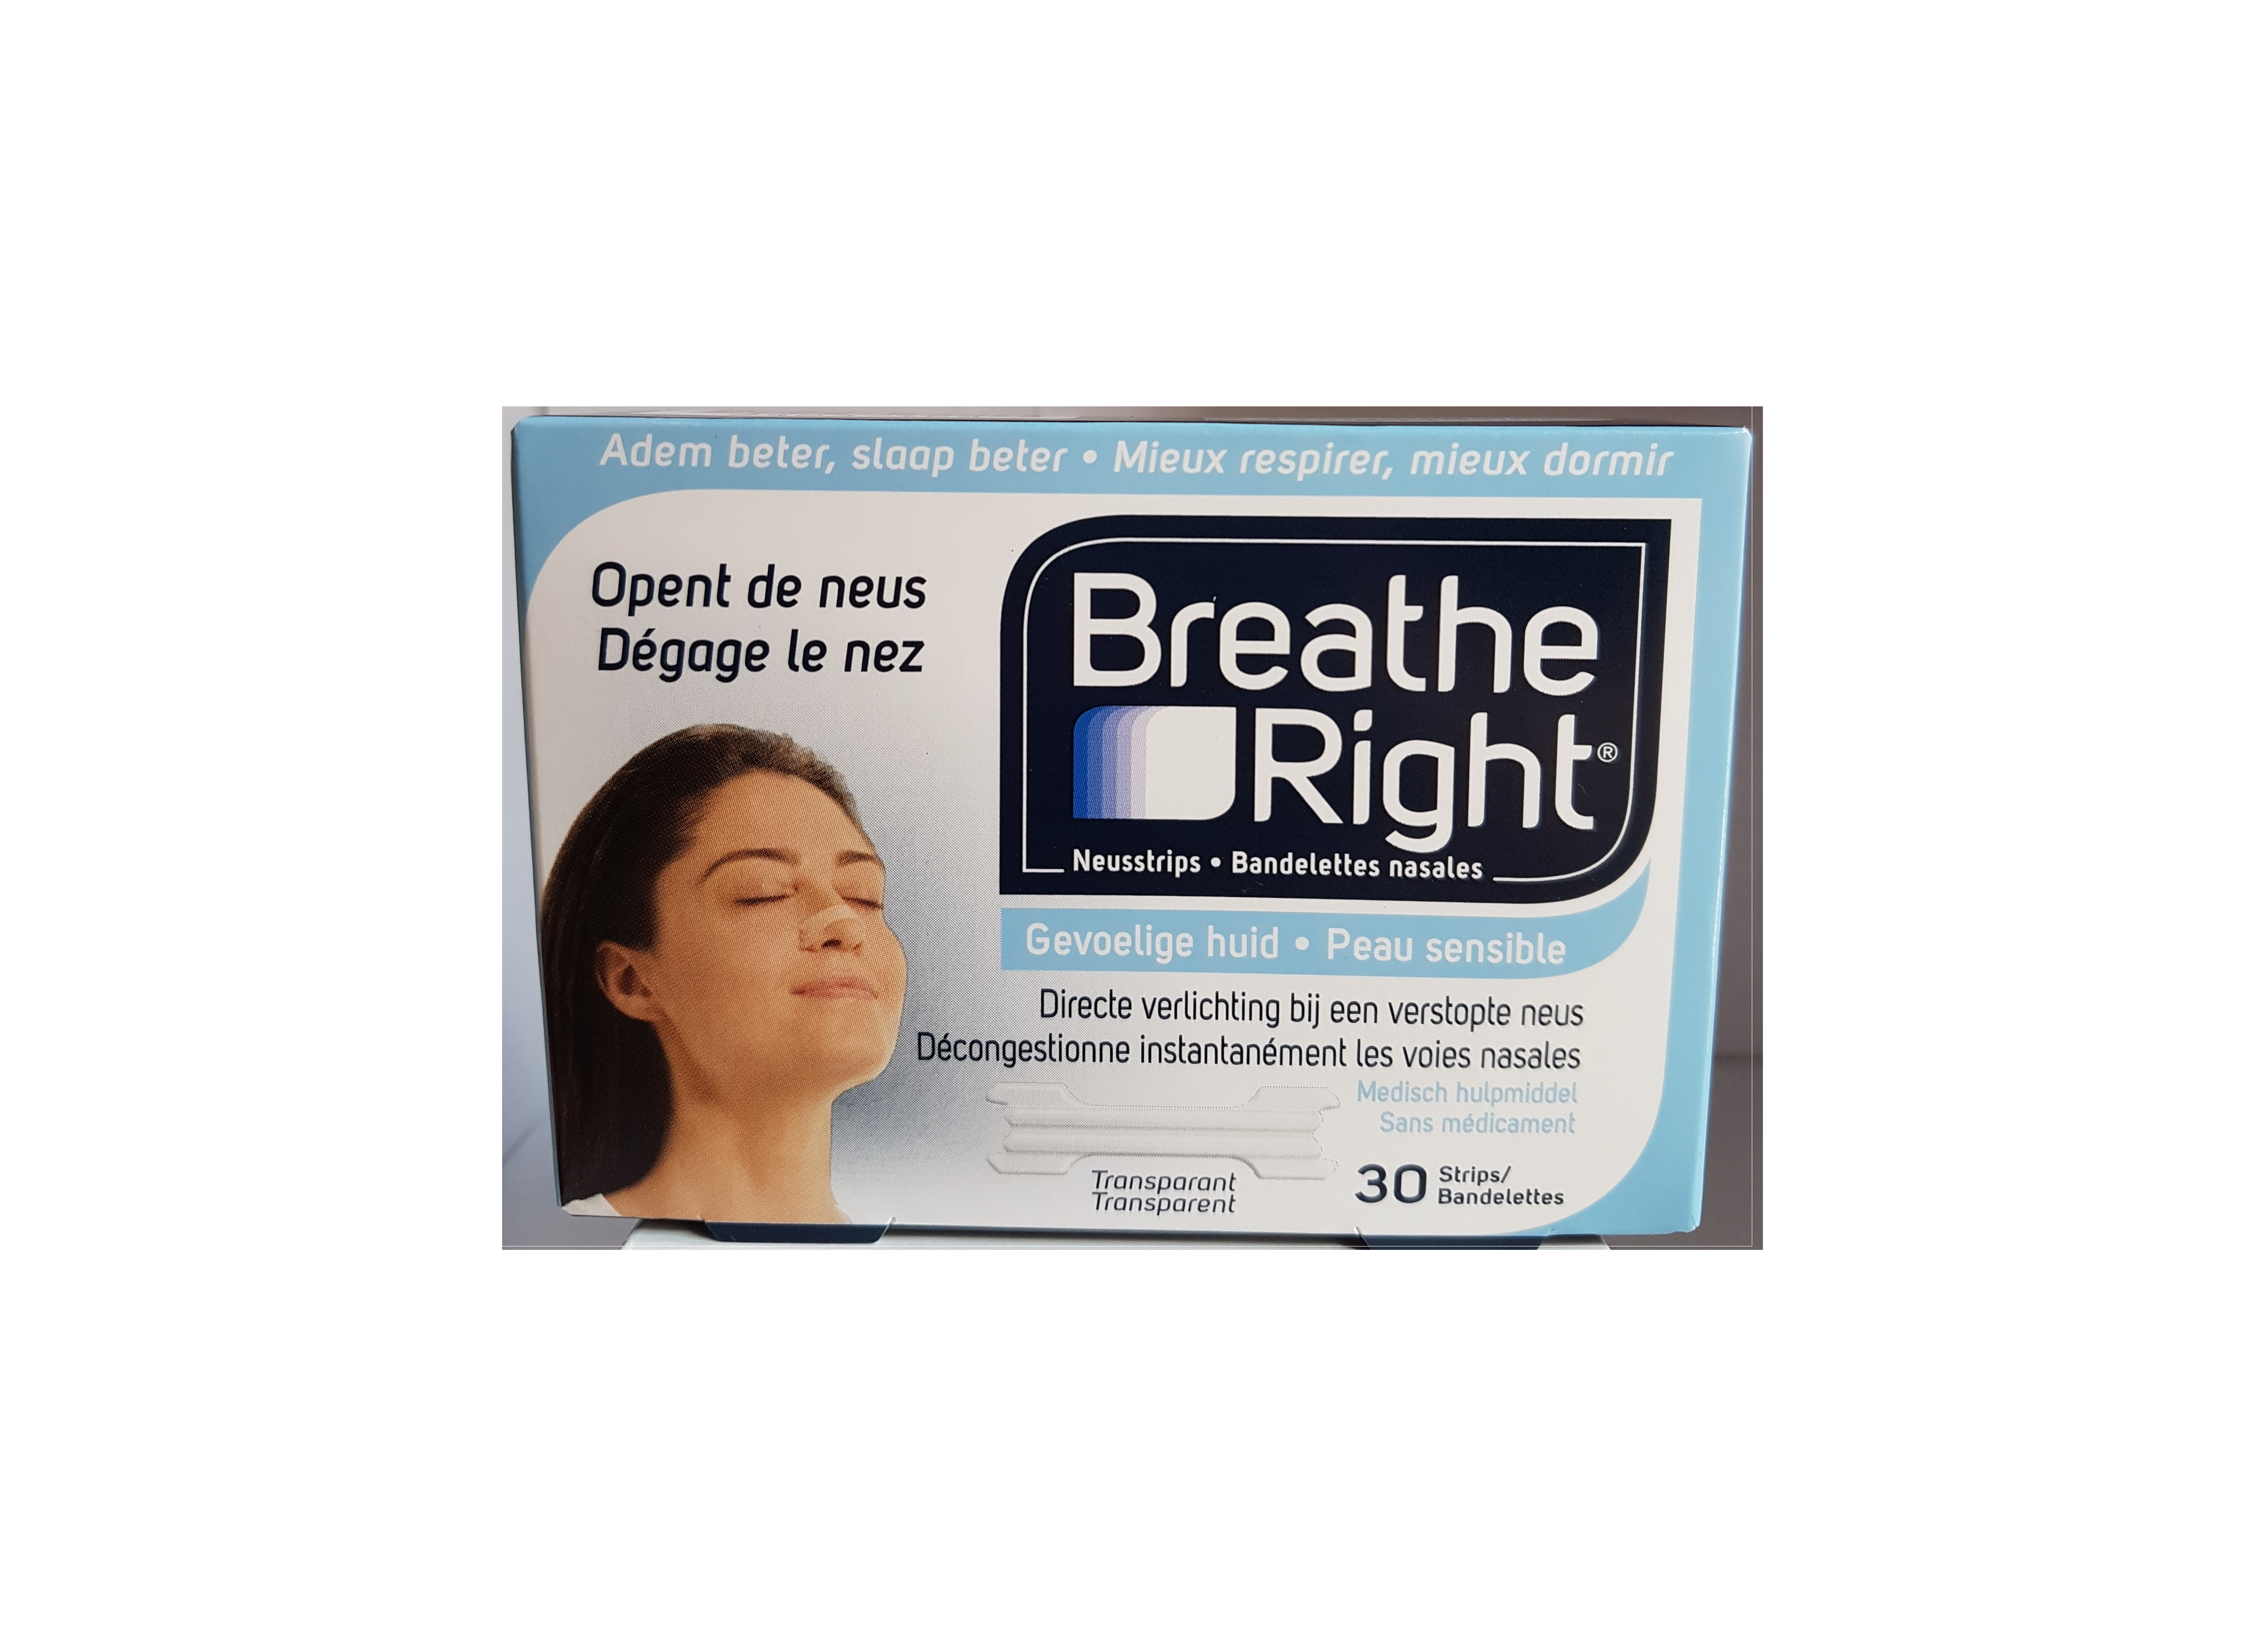 breathe-right.jpg